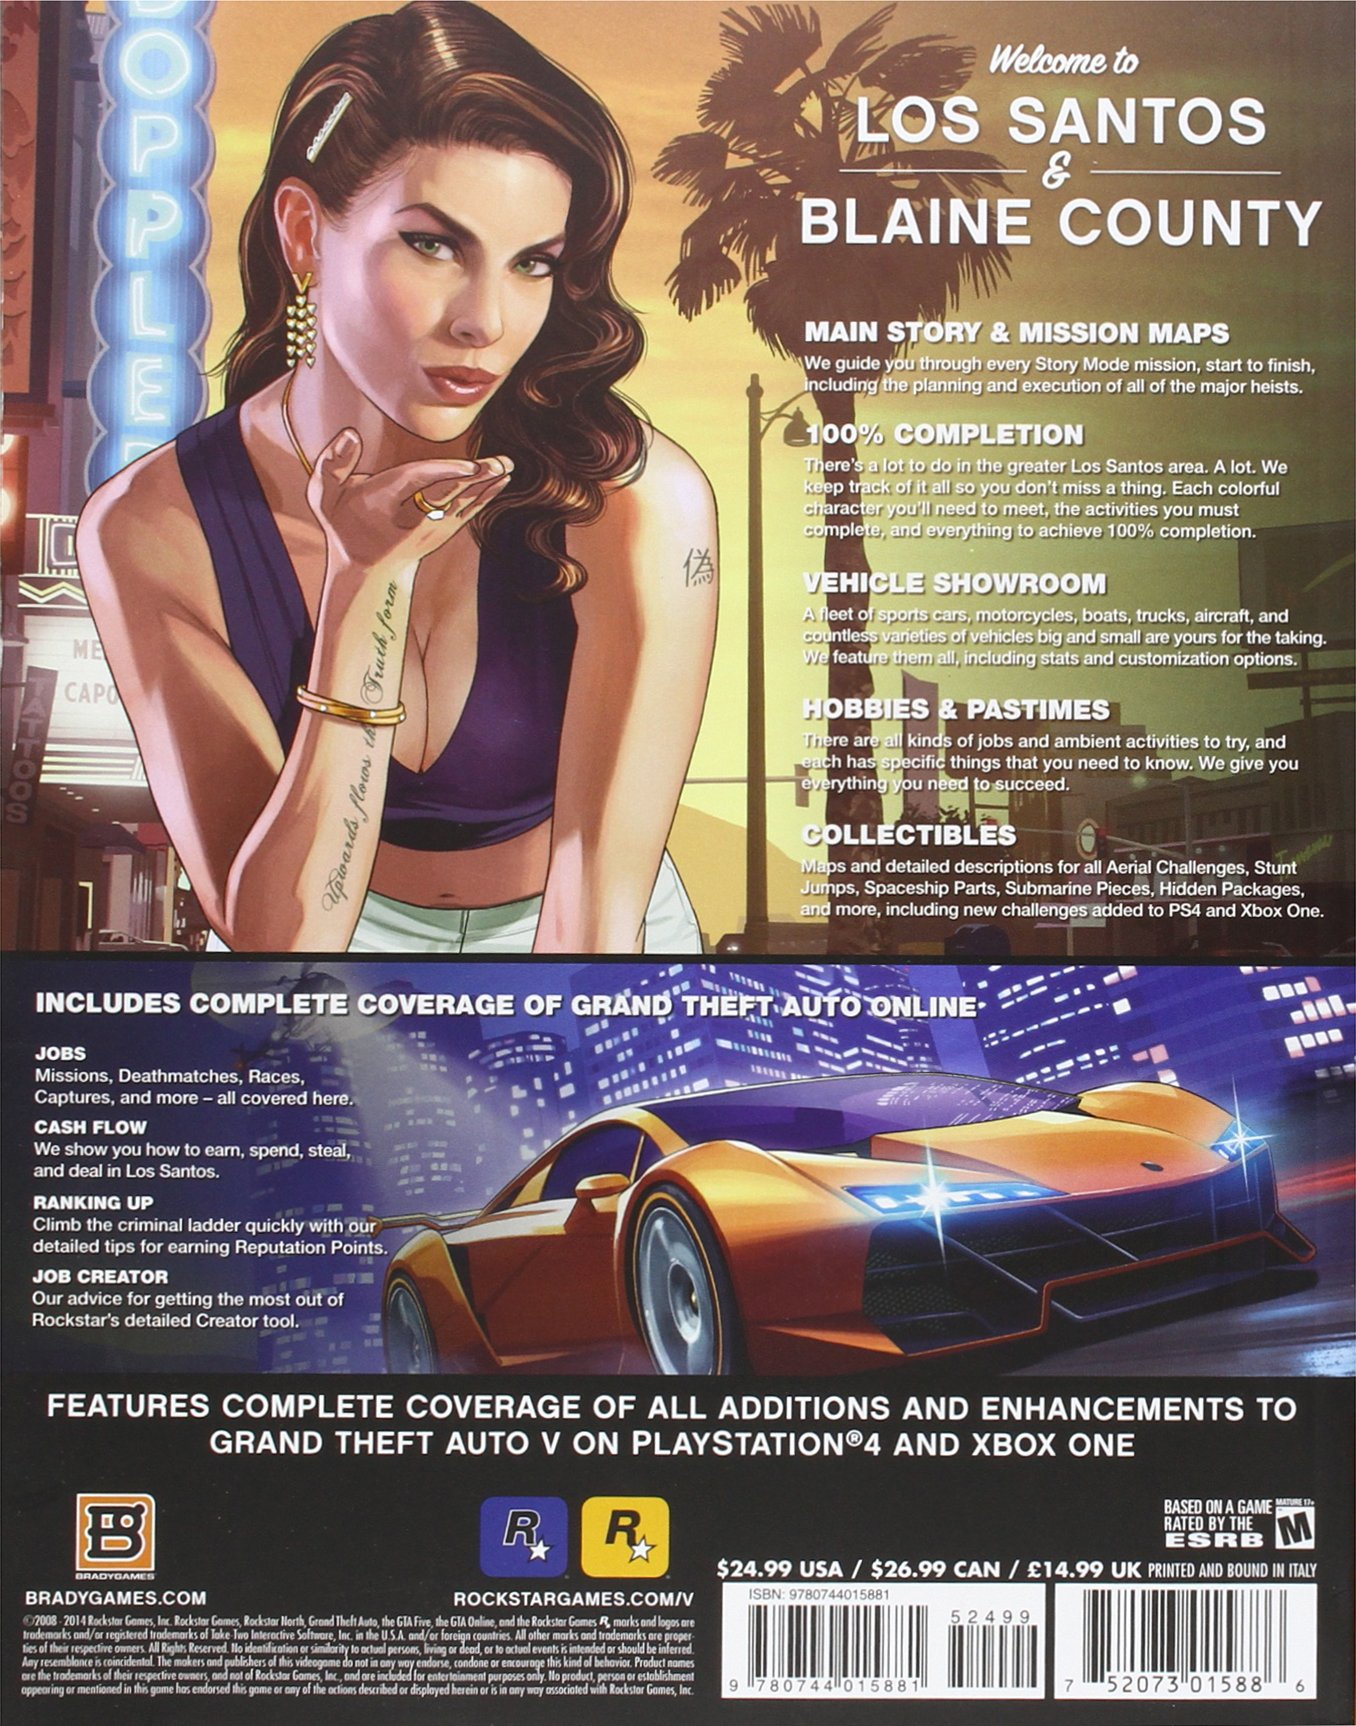 Grand Theft Auto V Signature Series Strategy Guide: Updated and Expanded Bradygames Signature Series: Amazon.es: BradyGames: Libros en idiomas extranjeros